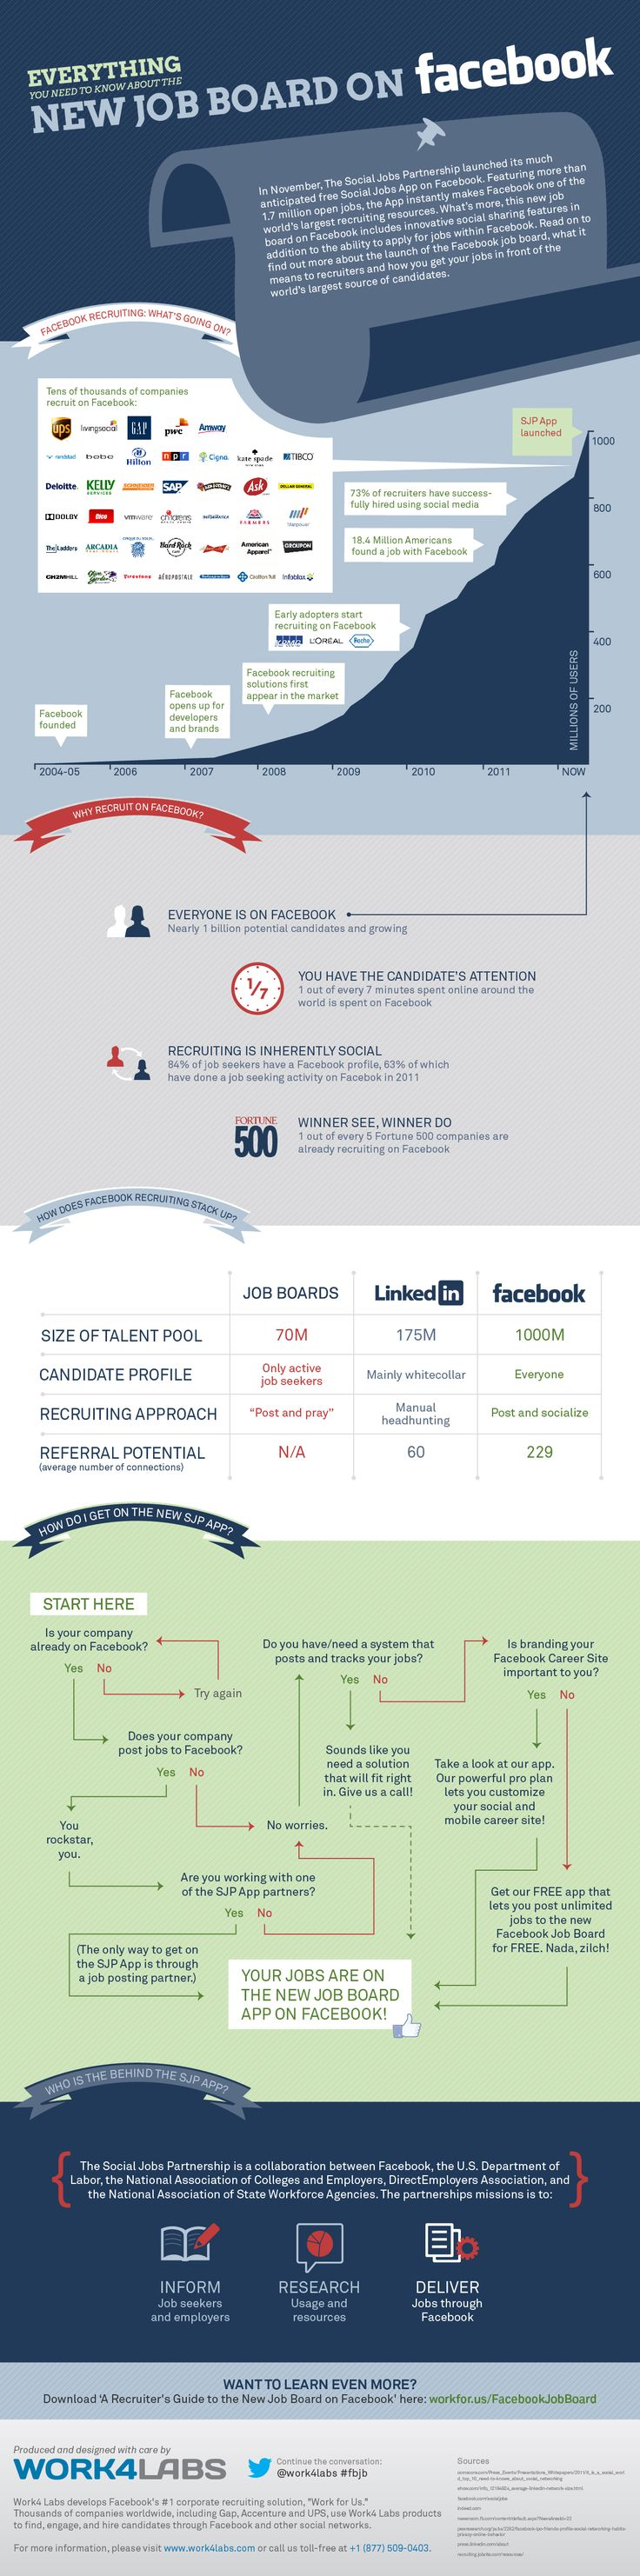 New Job Board on #Facebook #Infographic - Social Media Recruiting